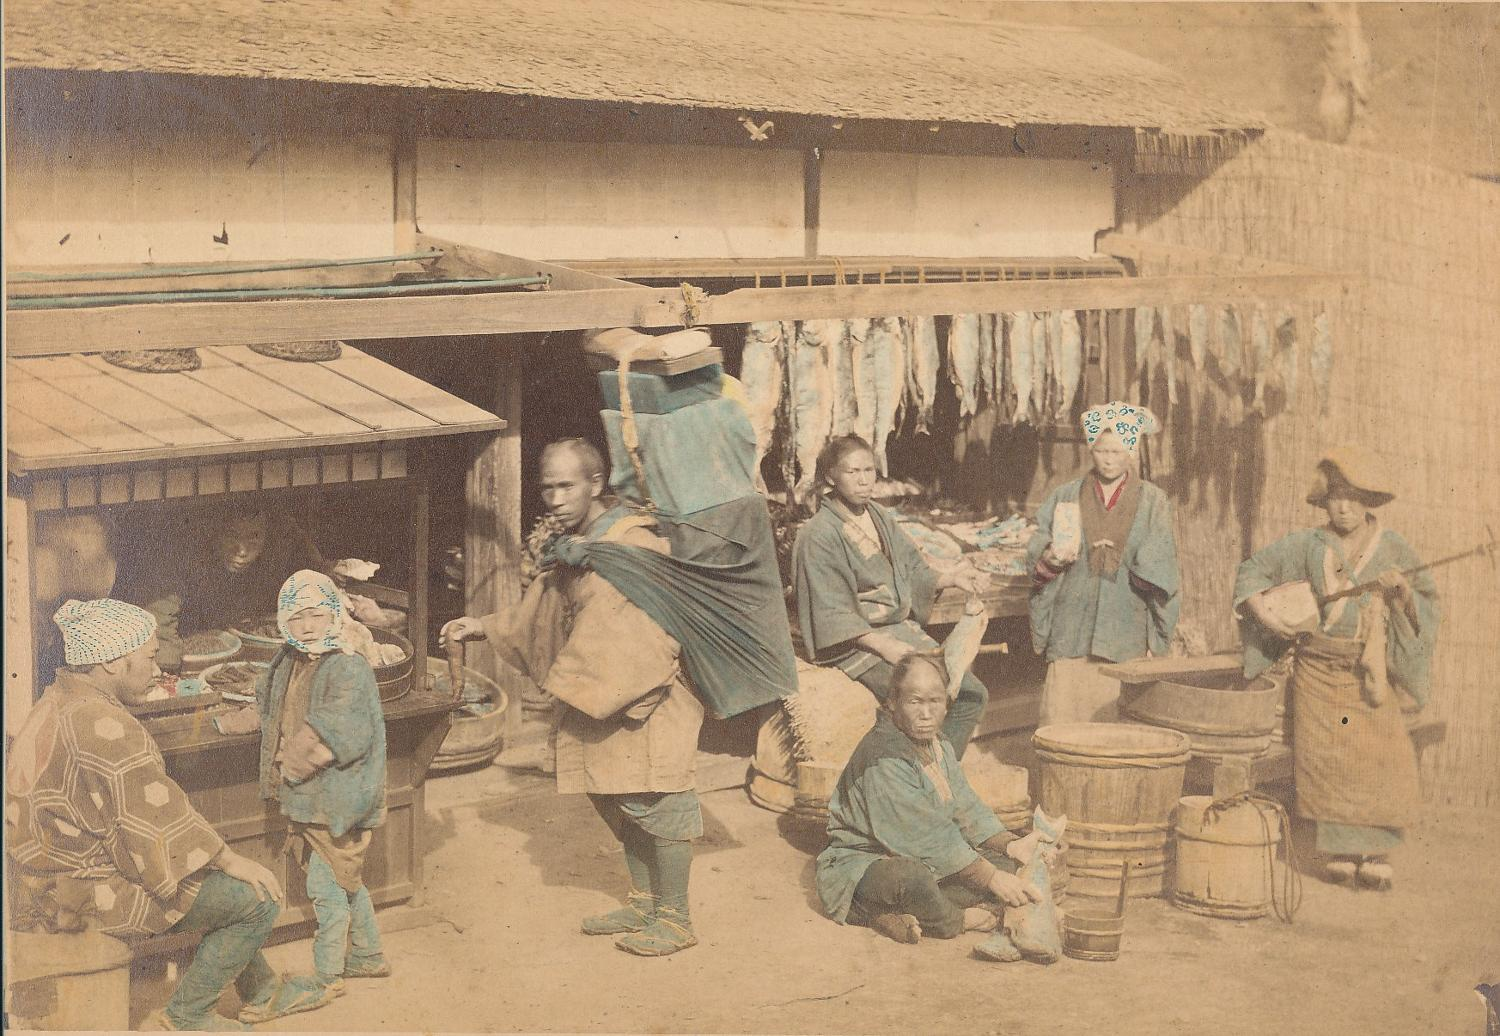 Husking Rice Japan By Felice Beato C1875